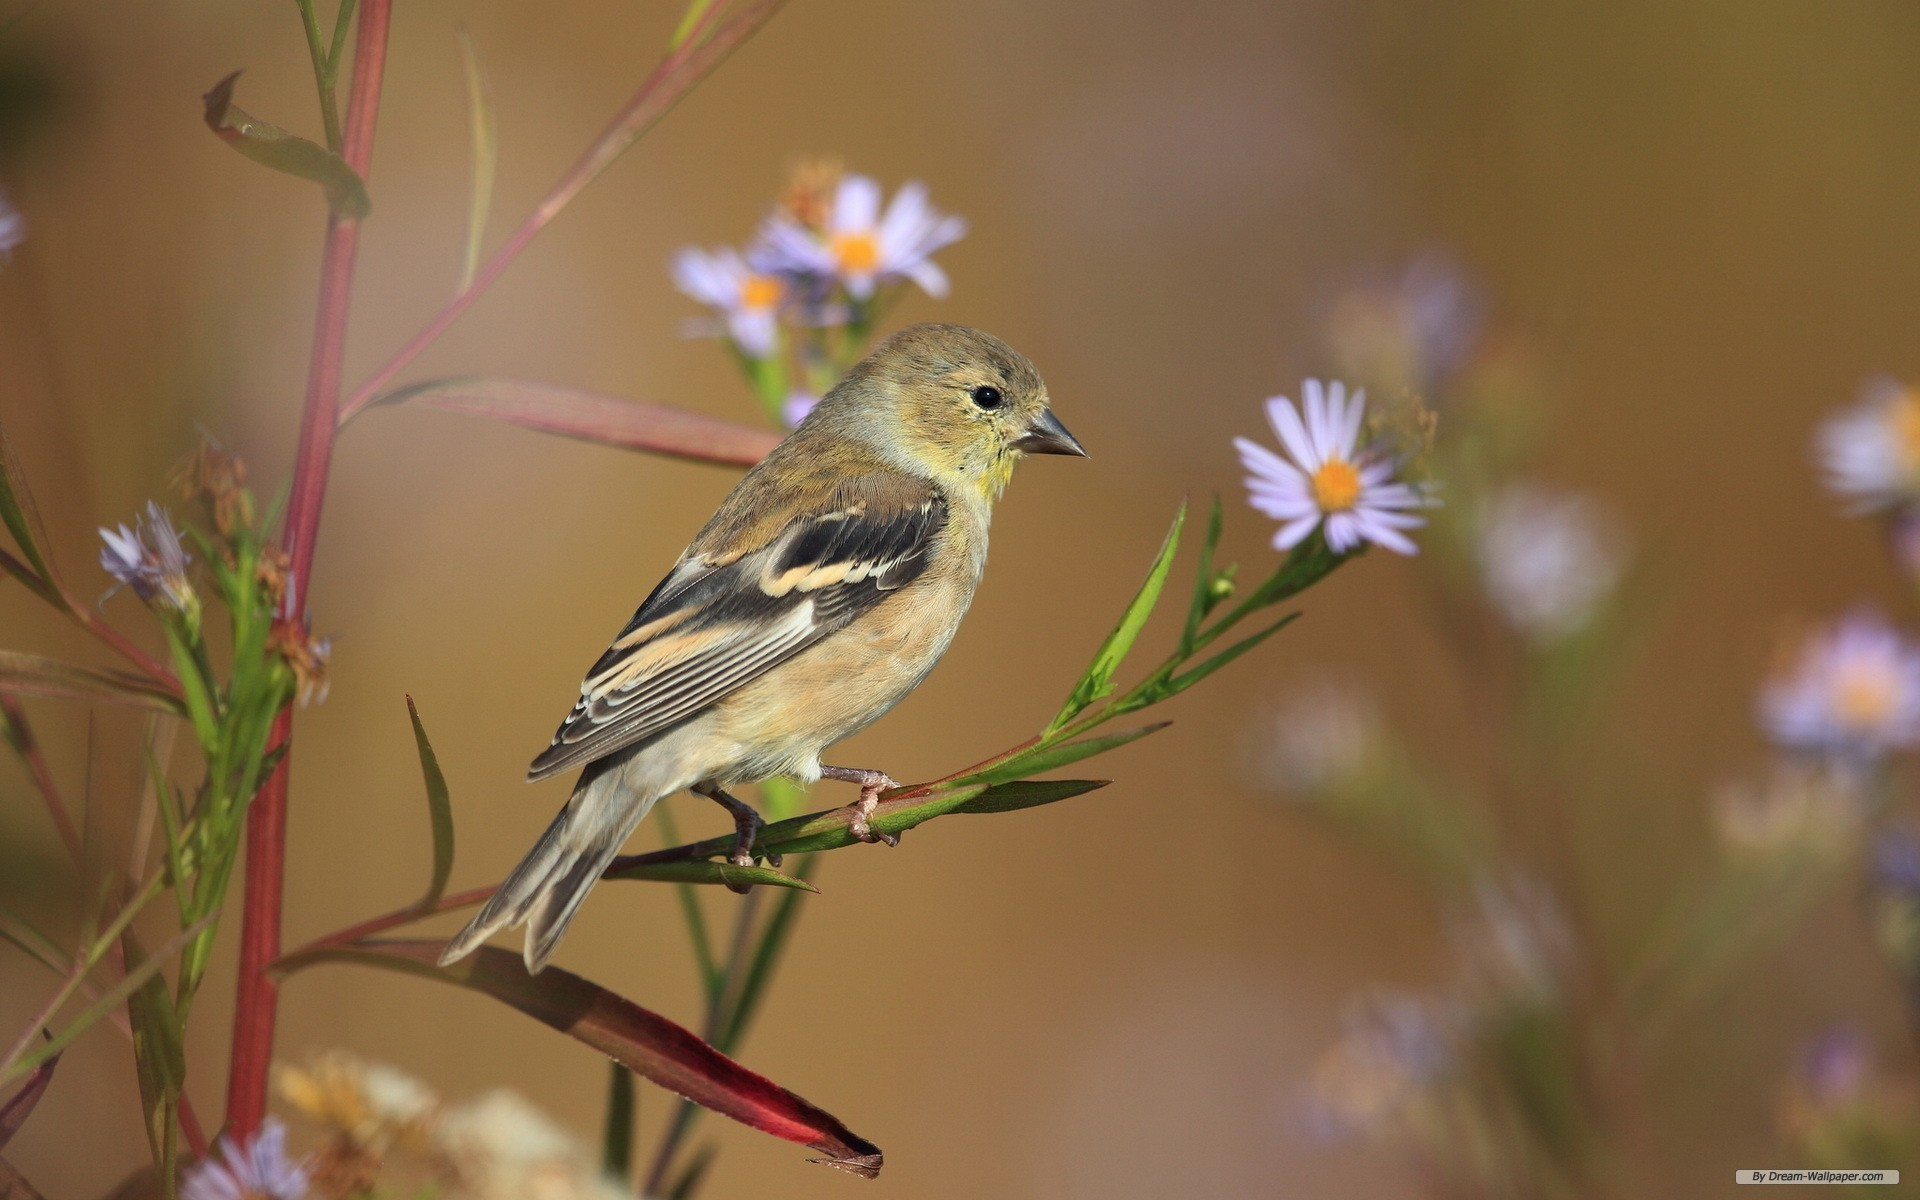 1920x1200 Free Animal wallpaper - Spring Flowers And Birds wallpaper -   wallpaper - Index 8